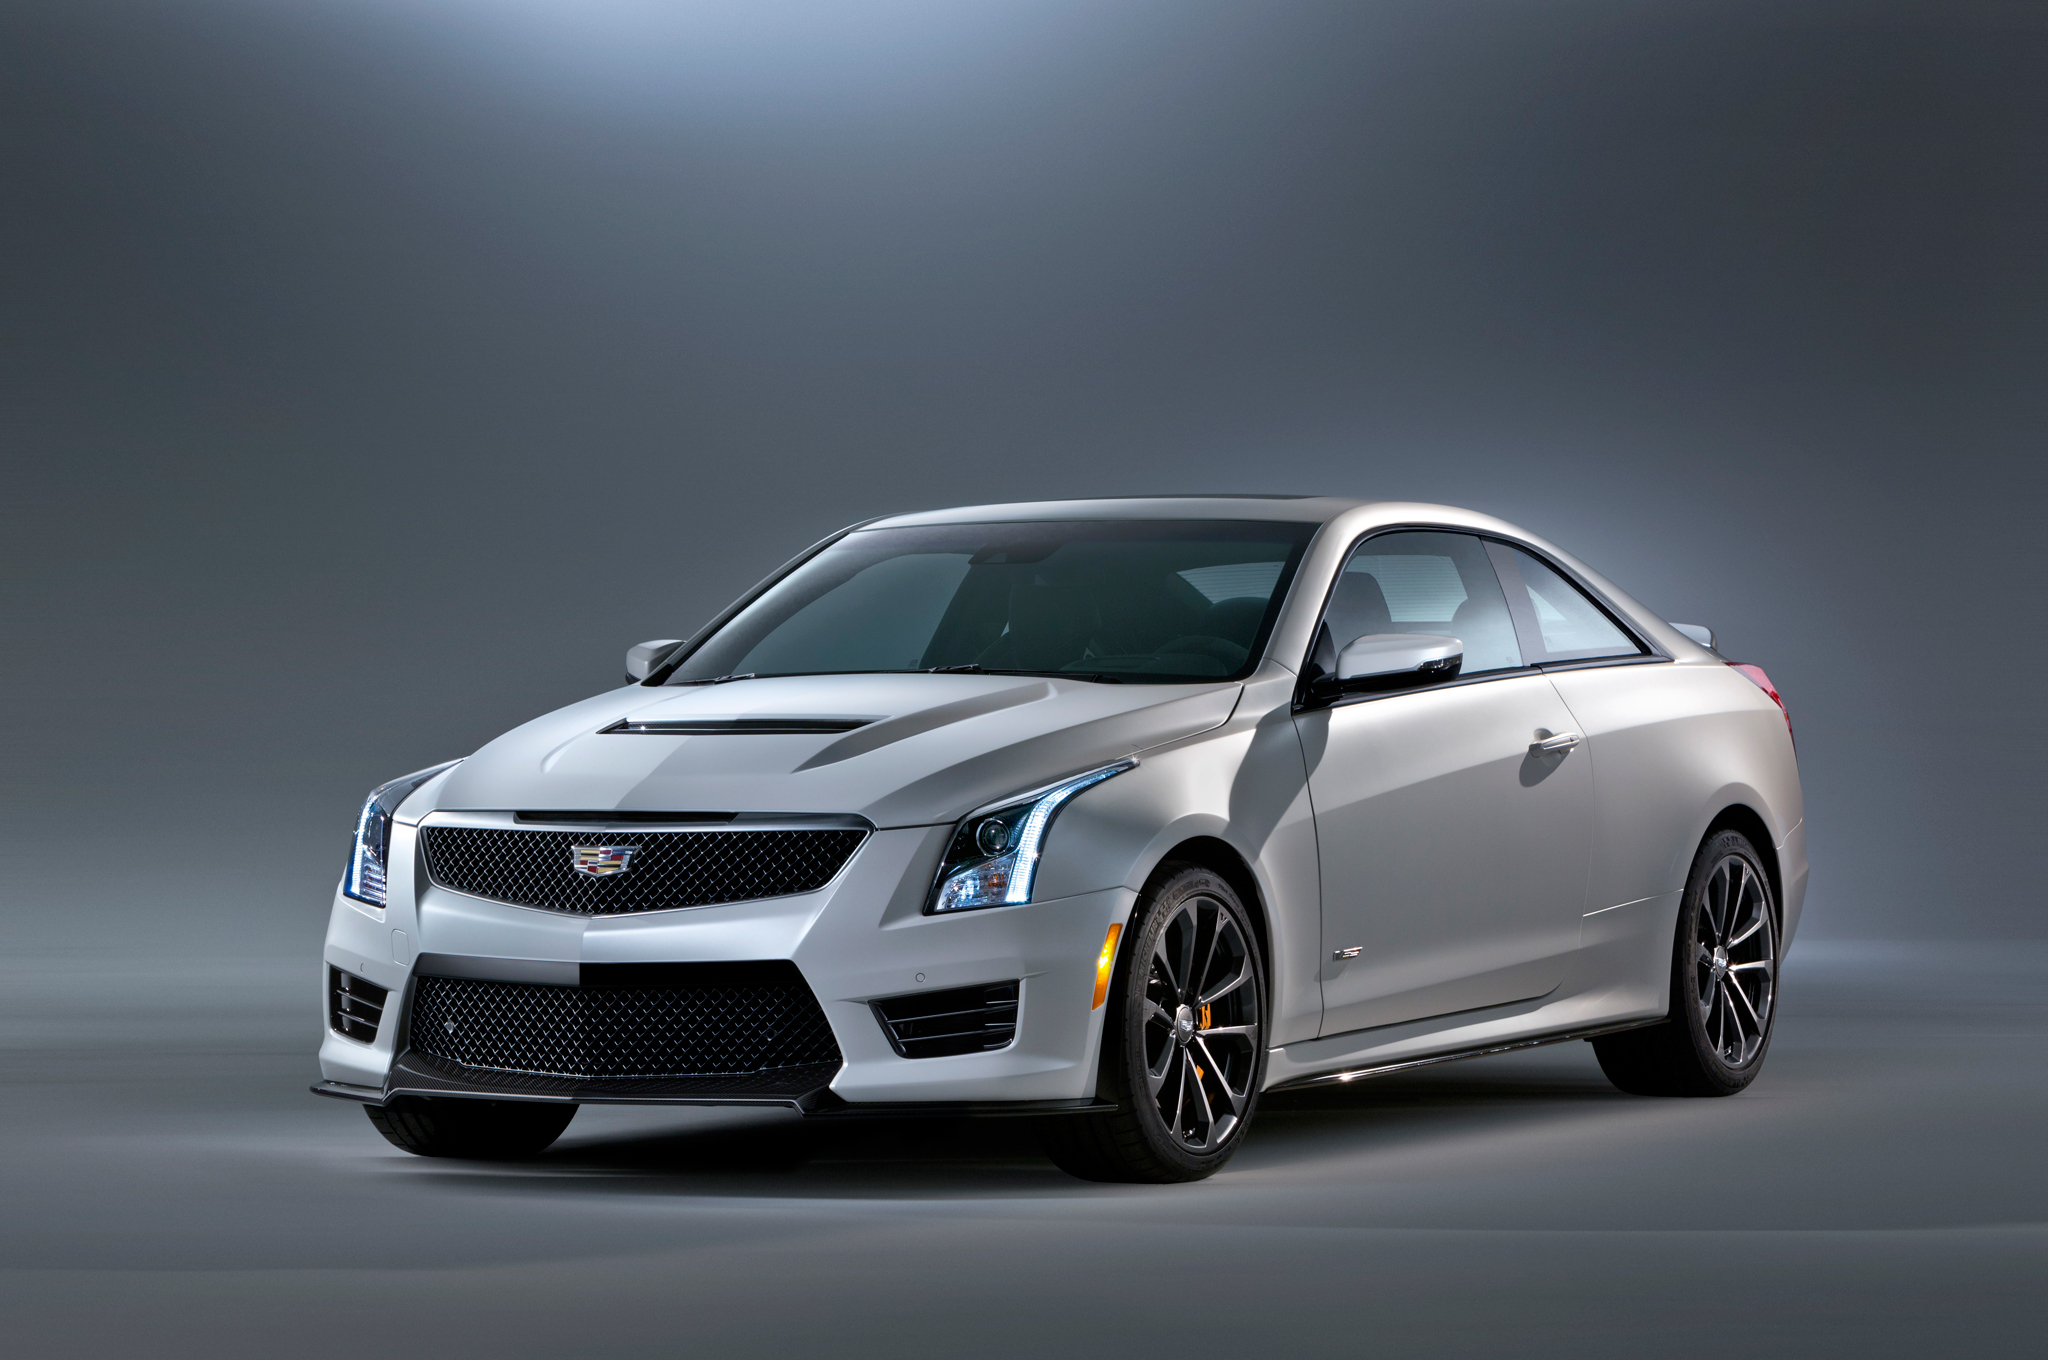 2016 Cadillac Ats V First Look Motor Trend